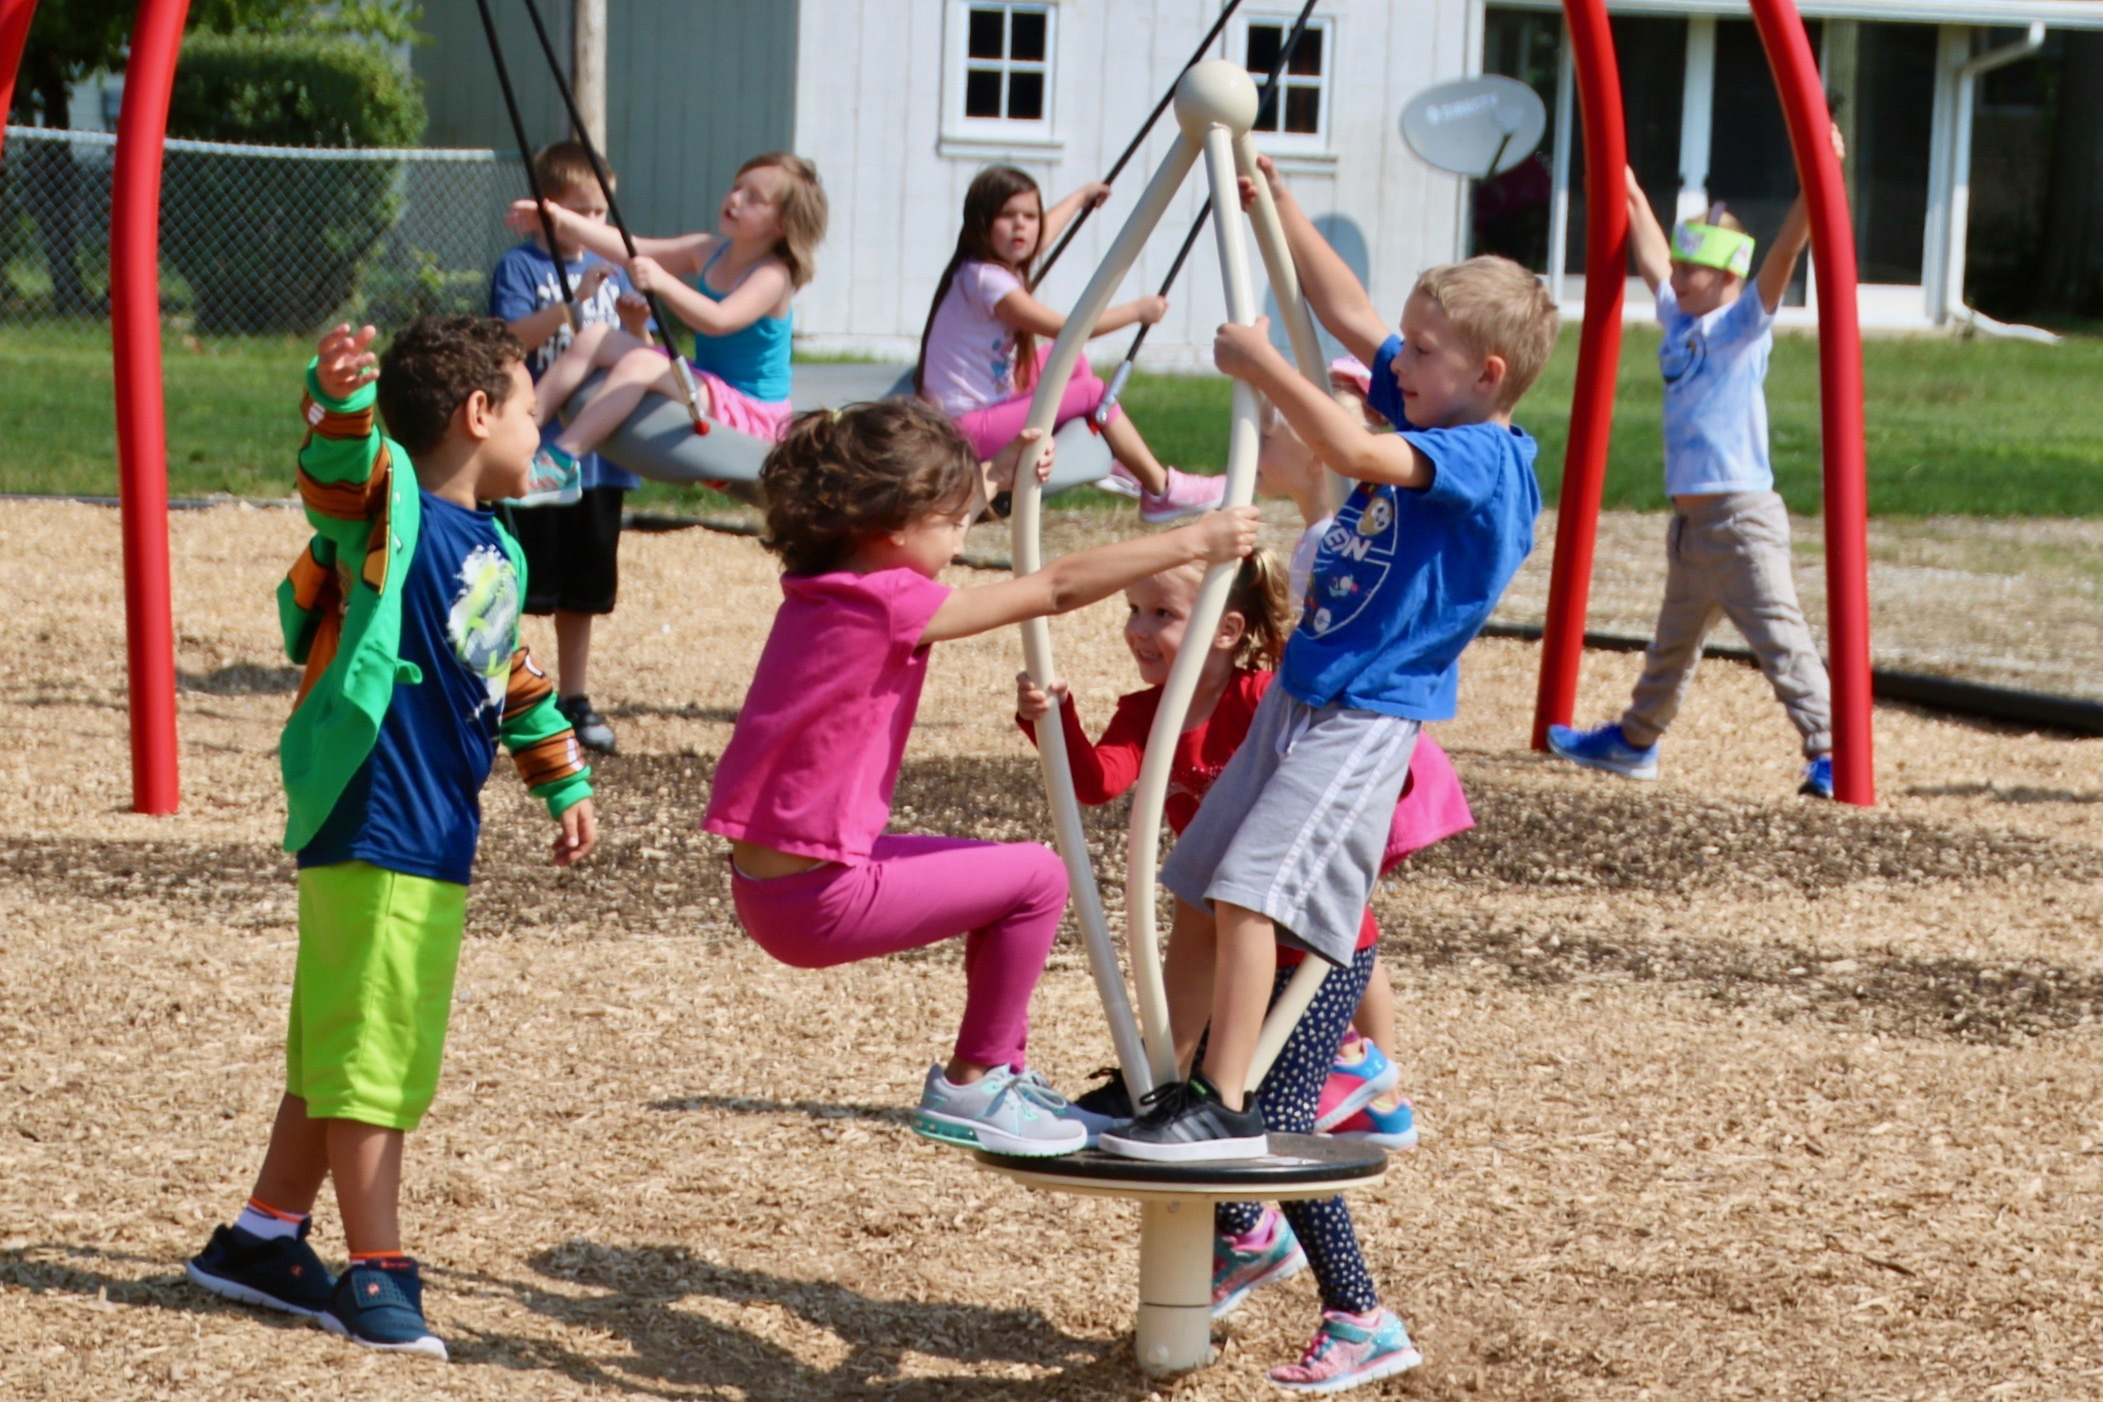 Students playing on new playground equipment on a sunny summer day